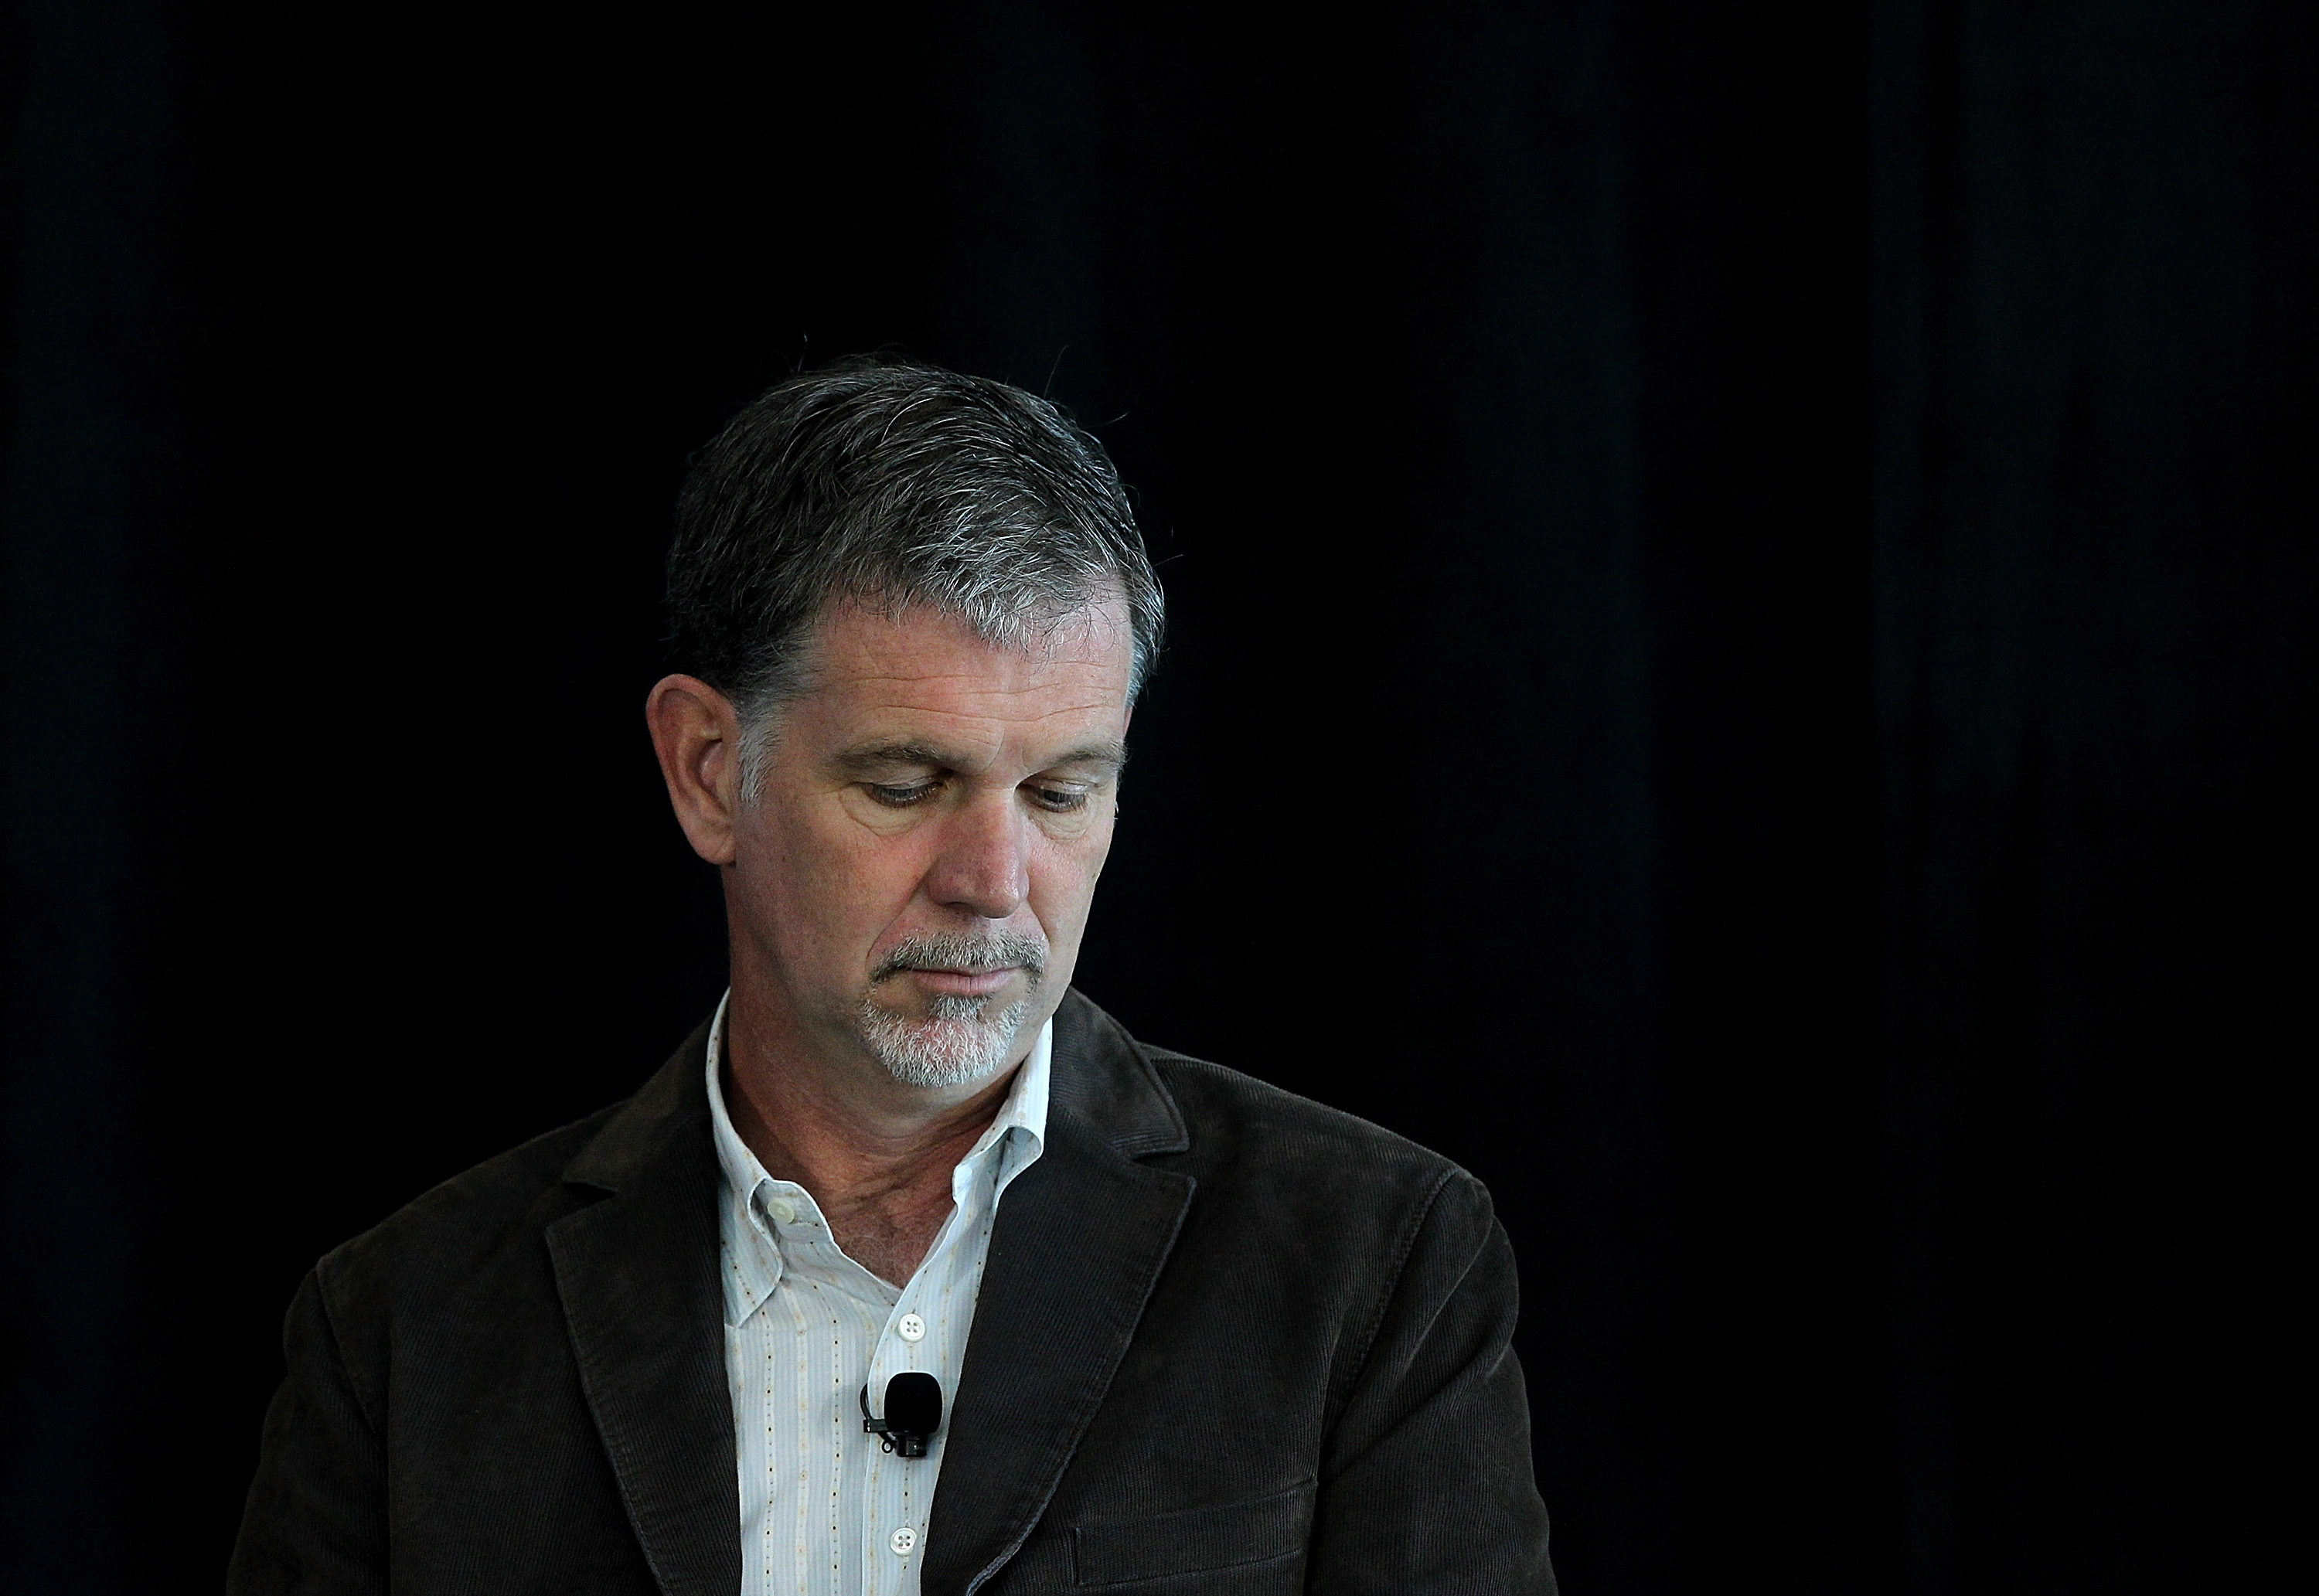 Netflix CEO argues for strong net neutrality and slams ISPs for 'extracting a toll because they can'